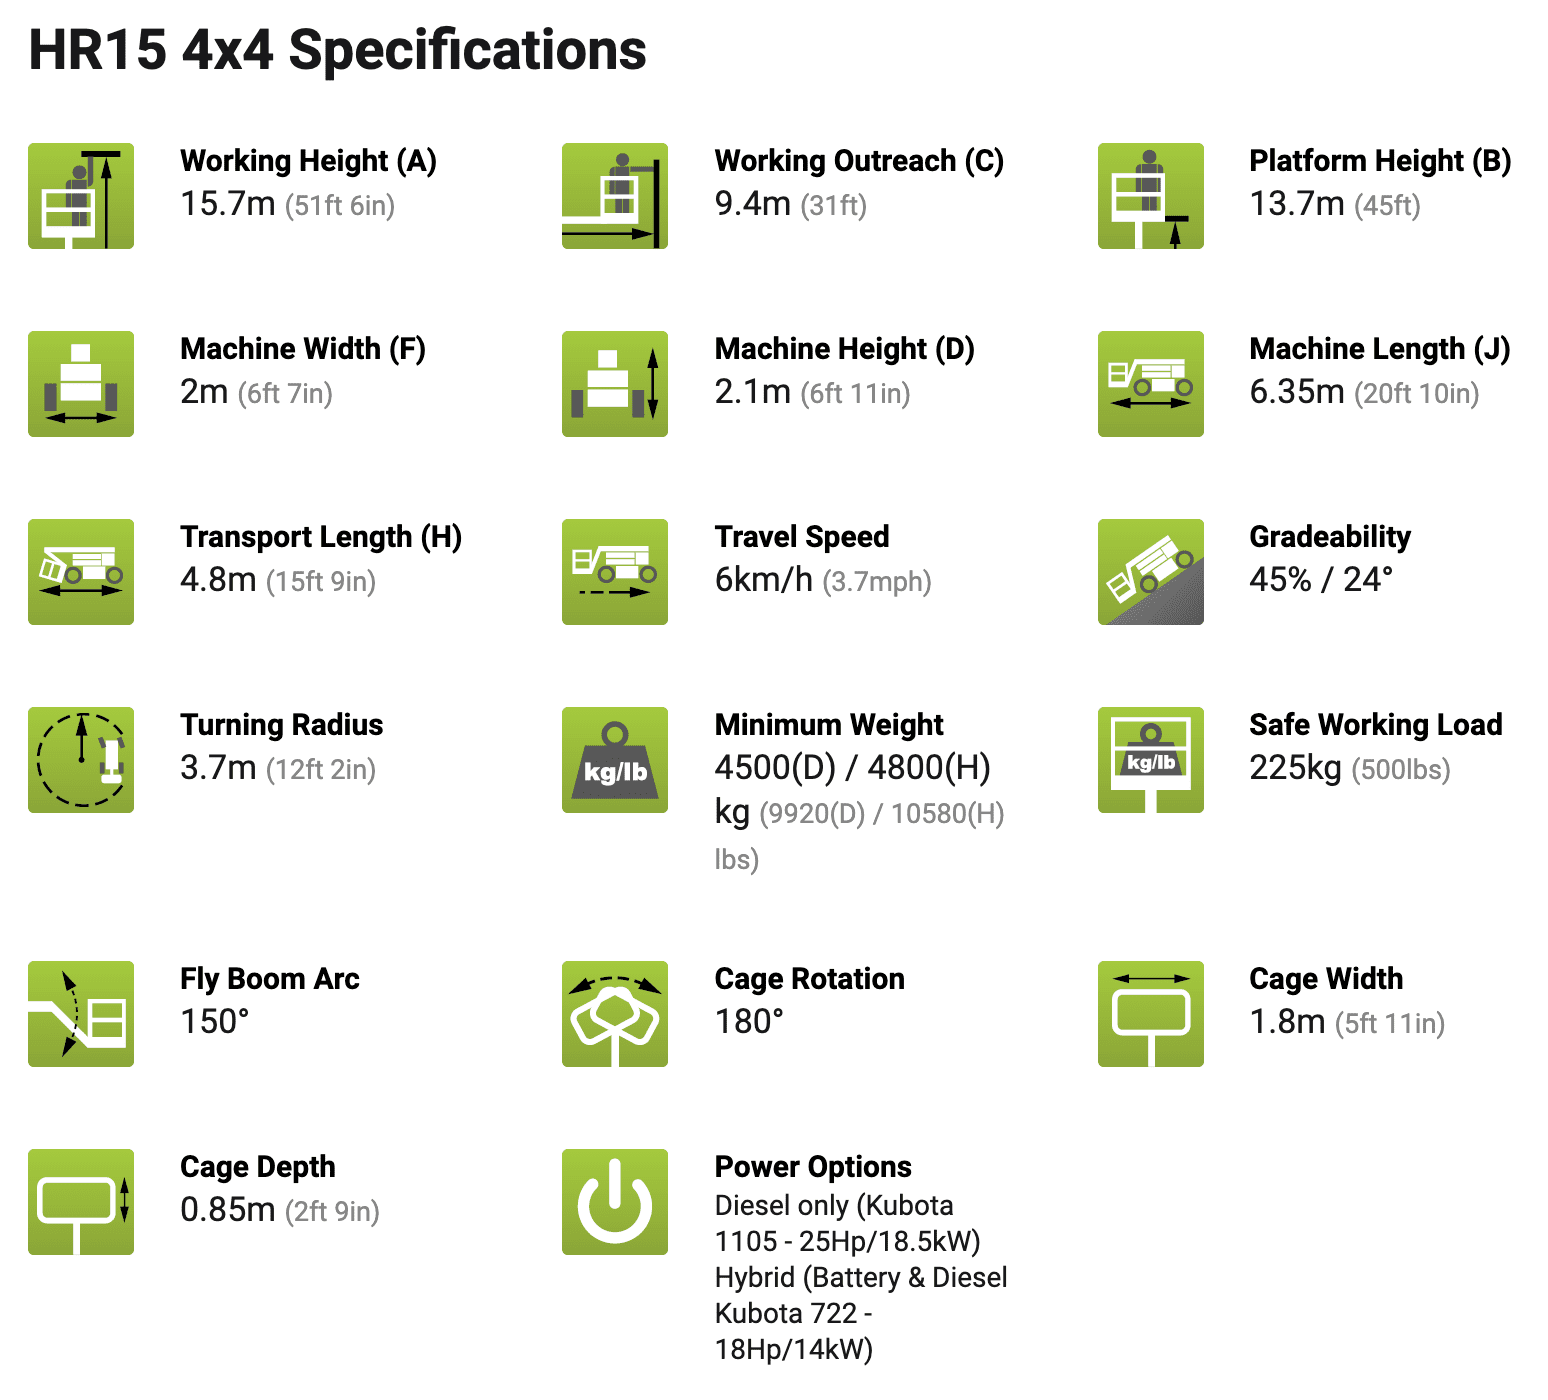 specifications HR15